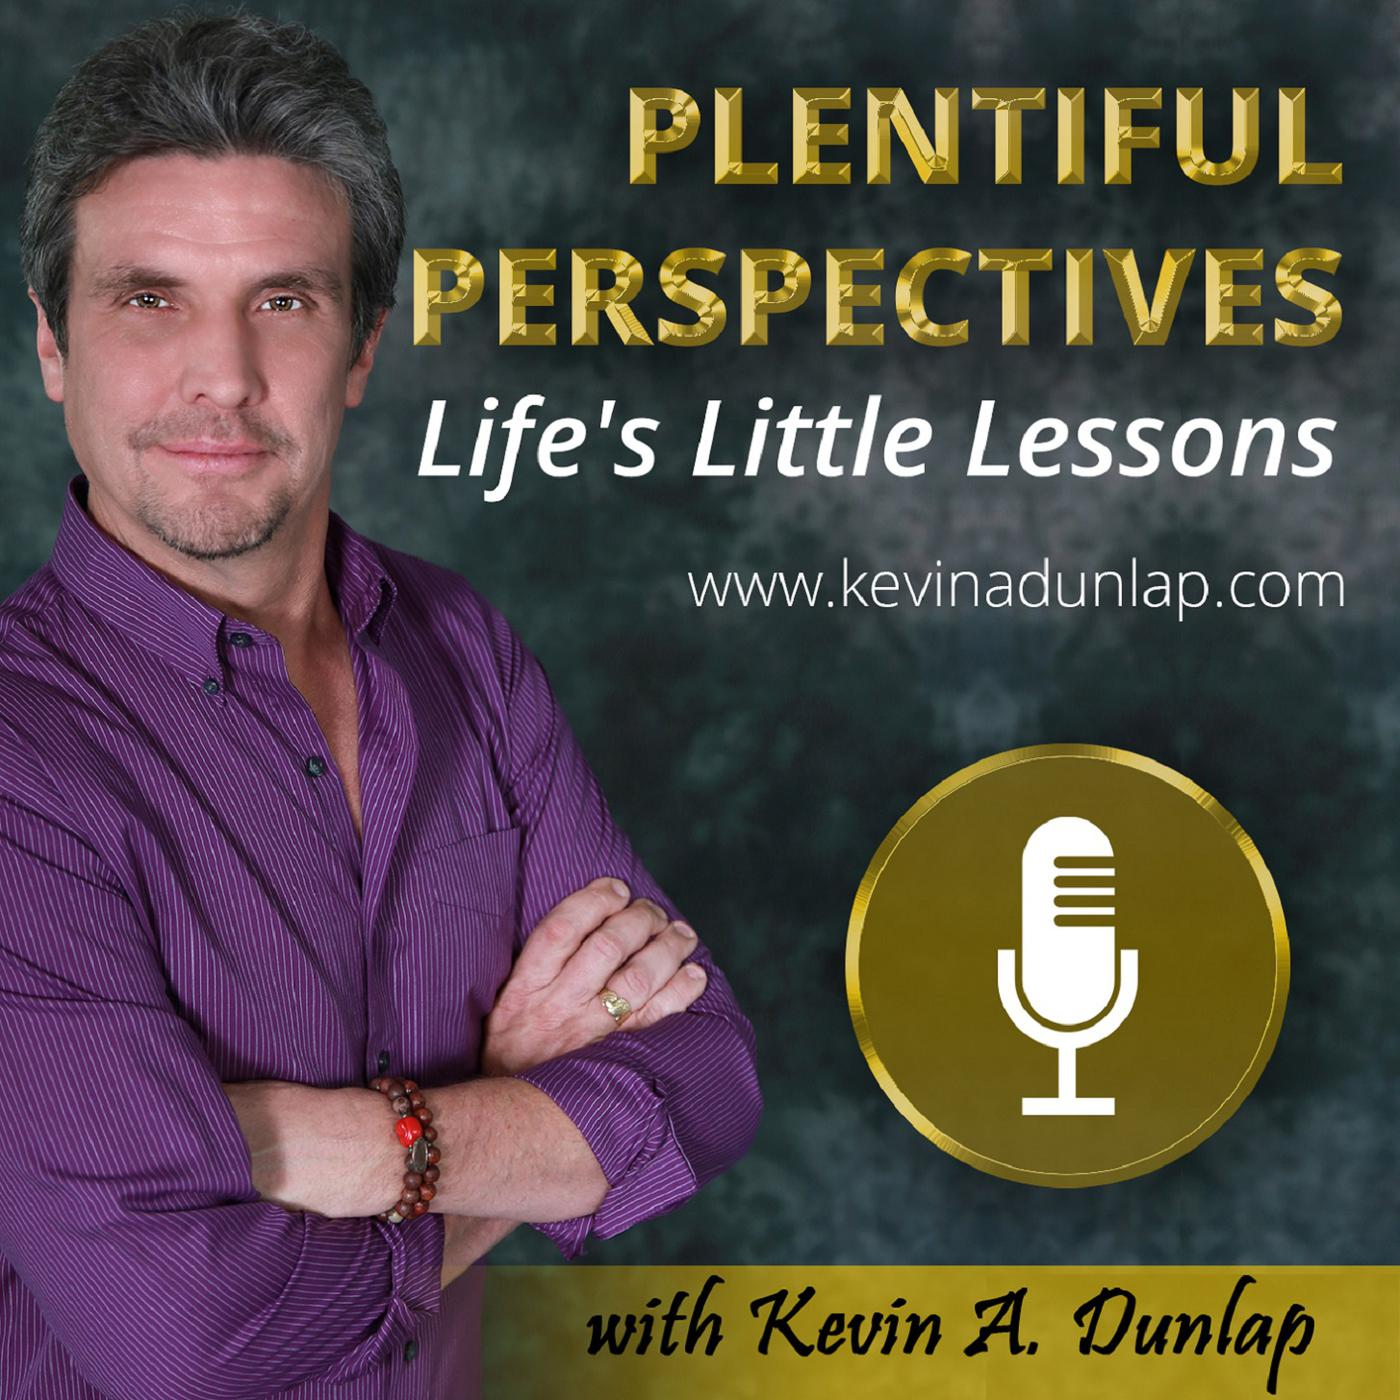 Product Launch | Tracy Hazzard | Plentiful Perspectives Podcast with Kevin A. Dunlap